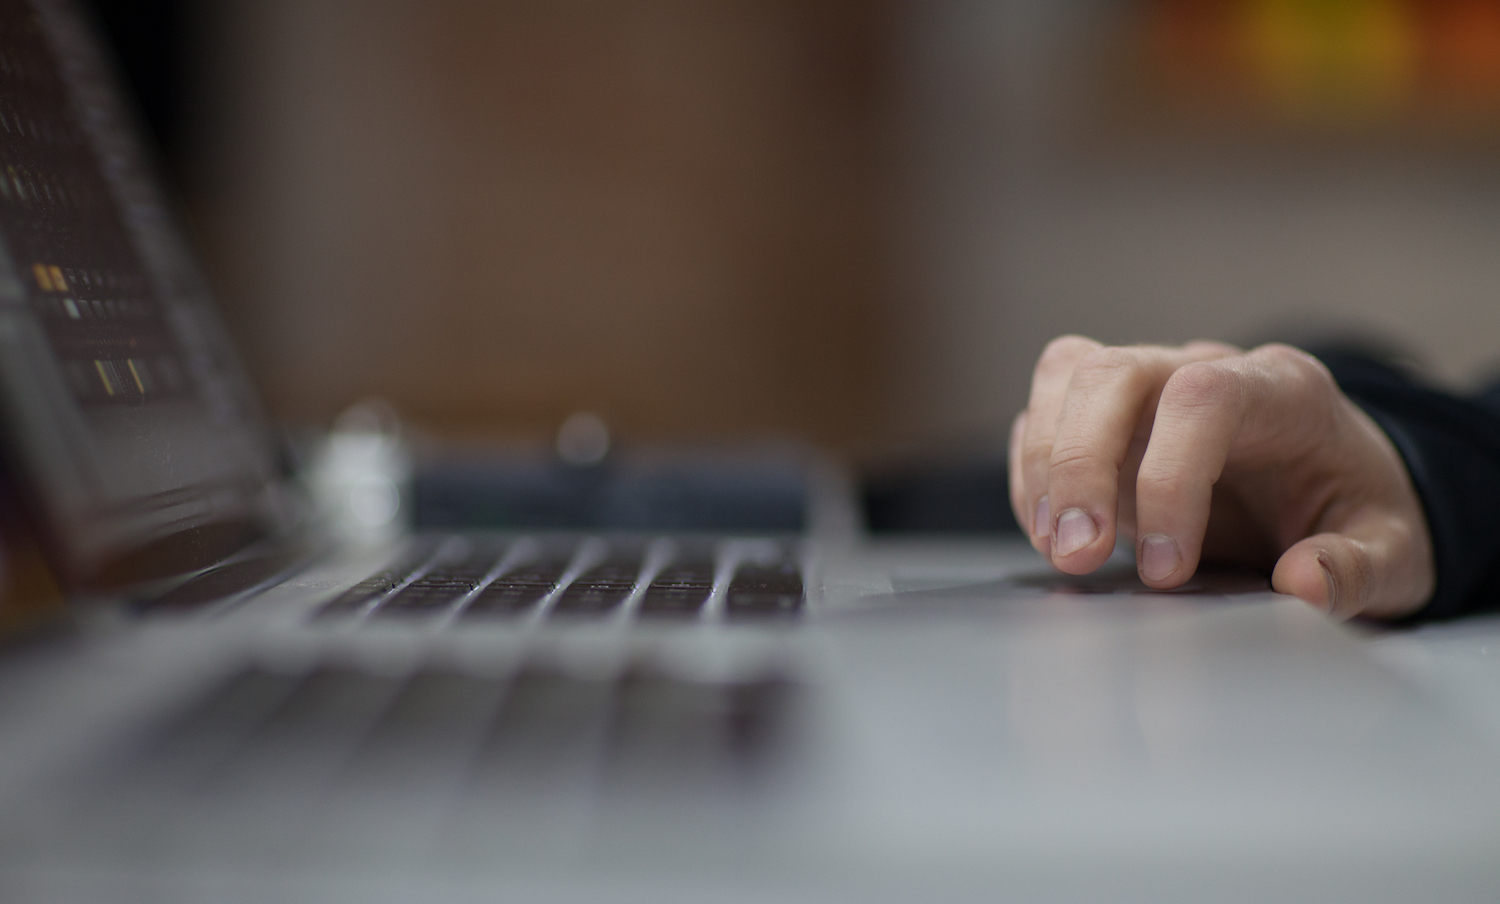 Man working on the laptop example image 1